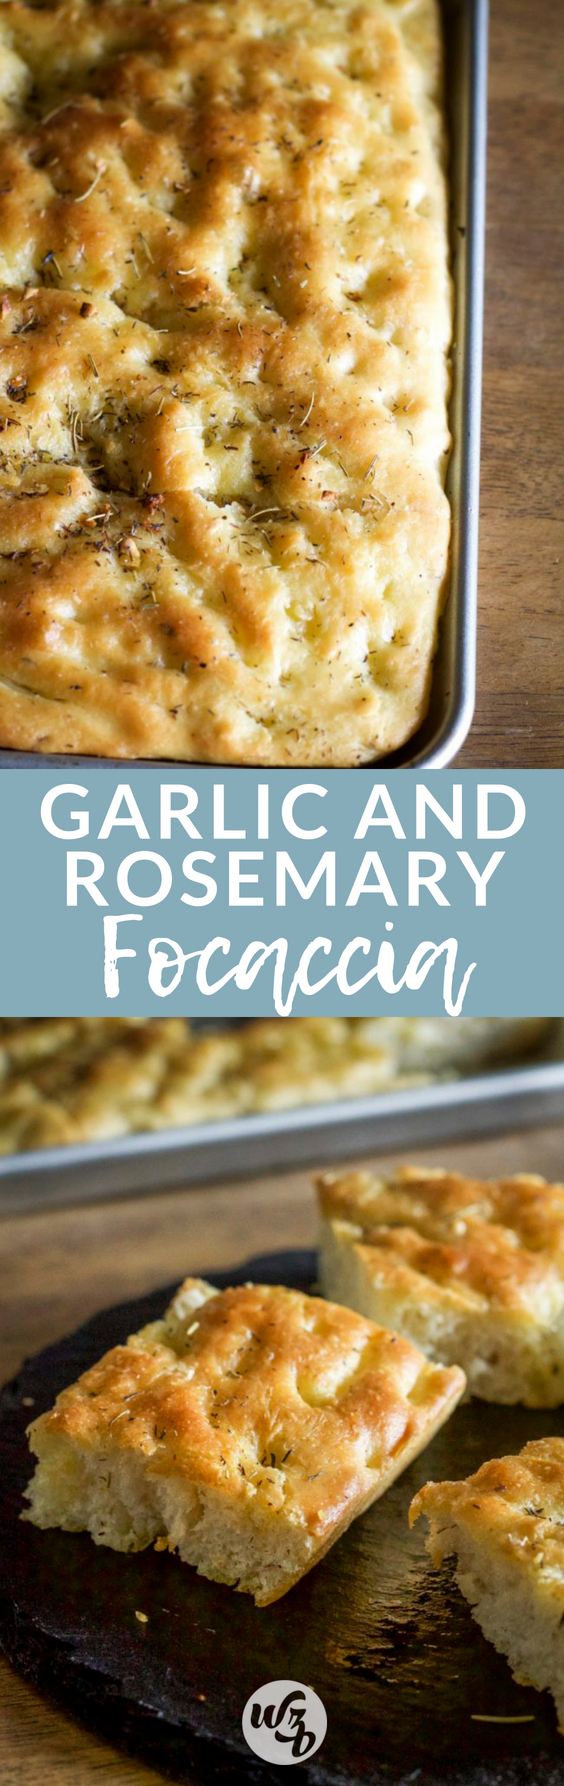 Warm, buttery bread made with olive oil infused rosemary, thyme and garlic. This garlic and rosemar